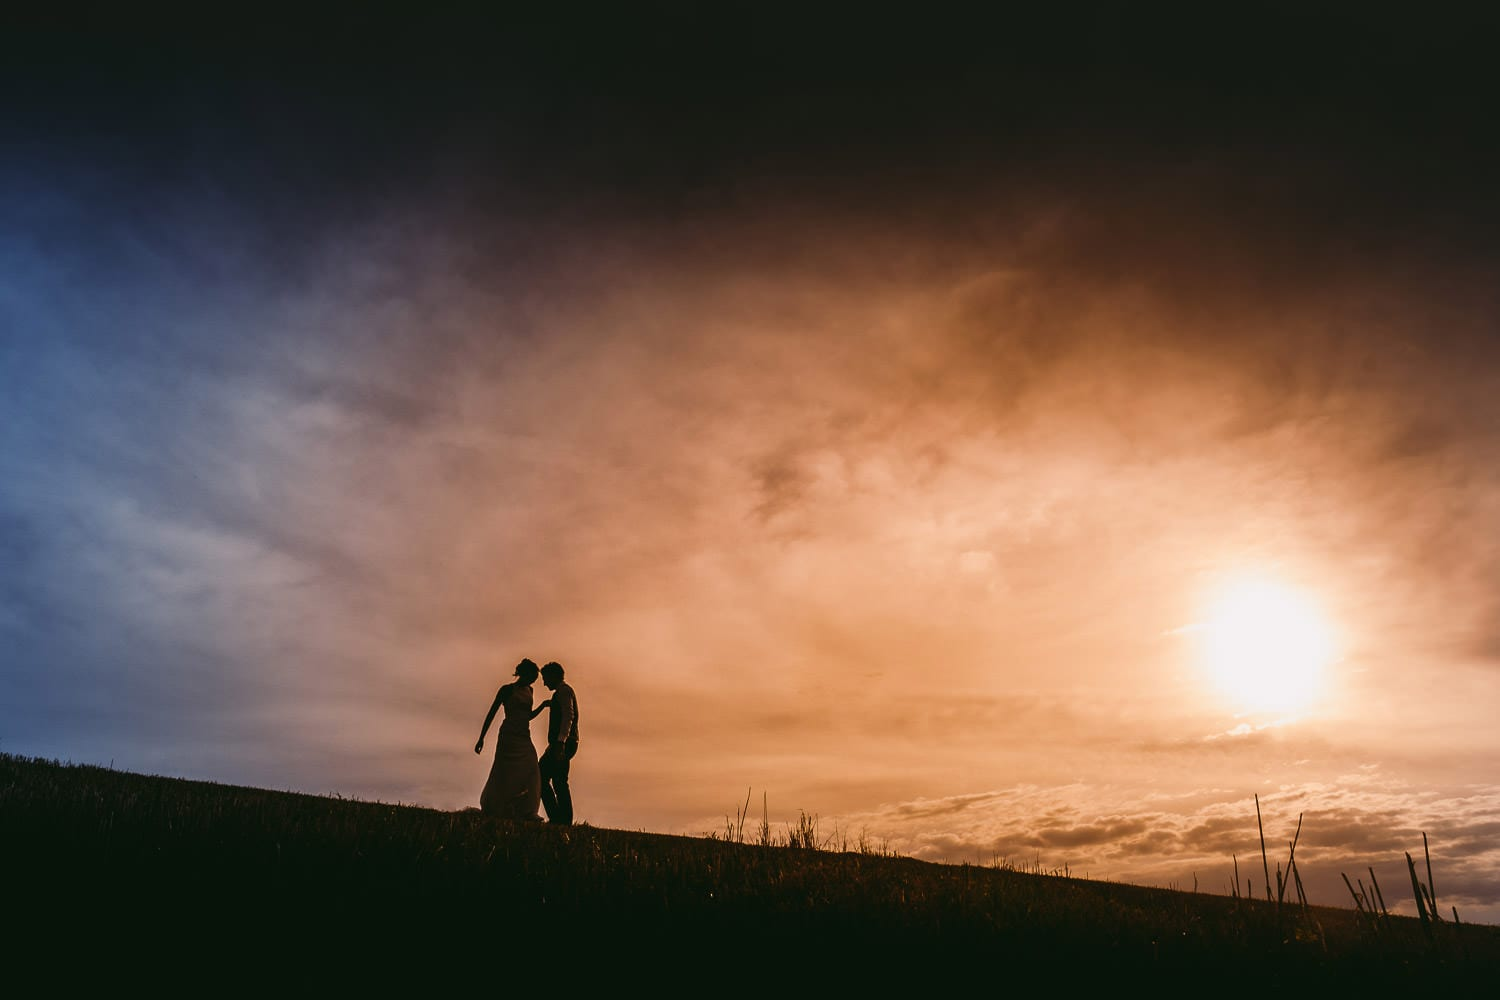 A Silhouette of the bride and groom at sunset